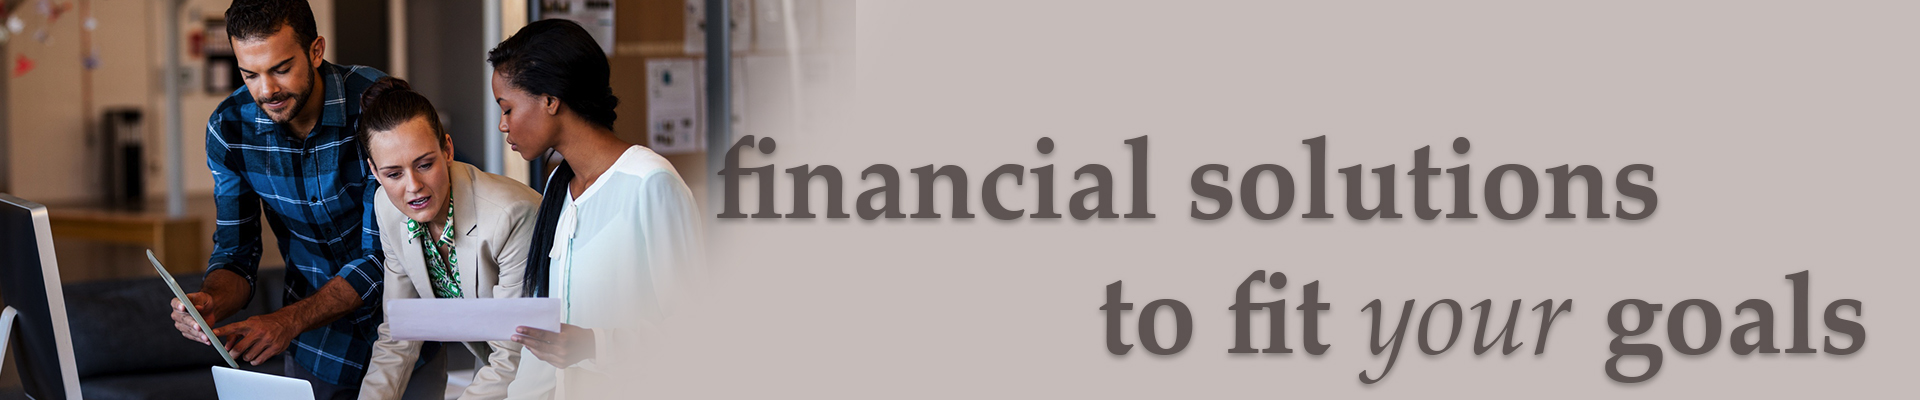 Financial solutions to fit your goals